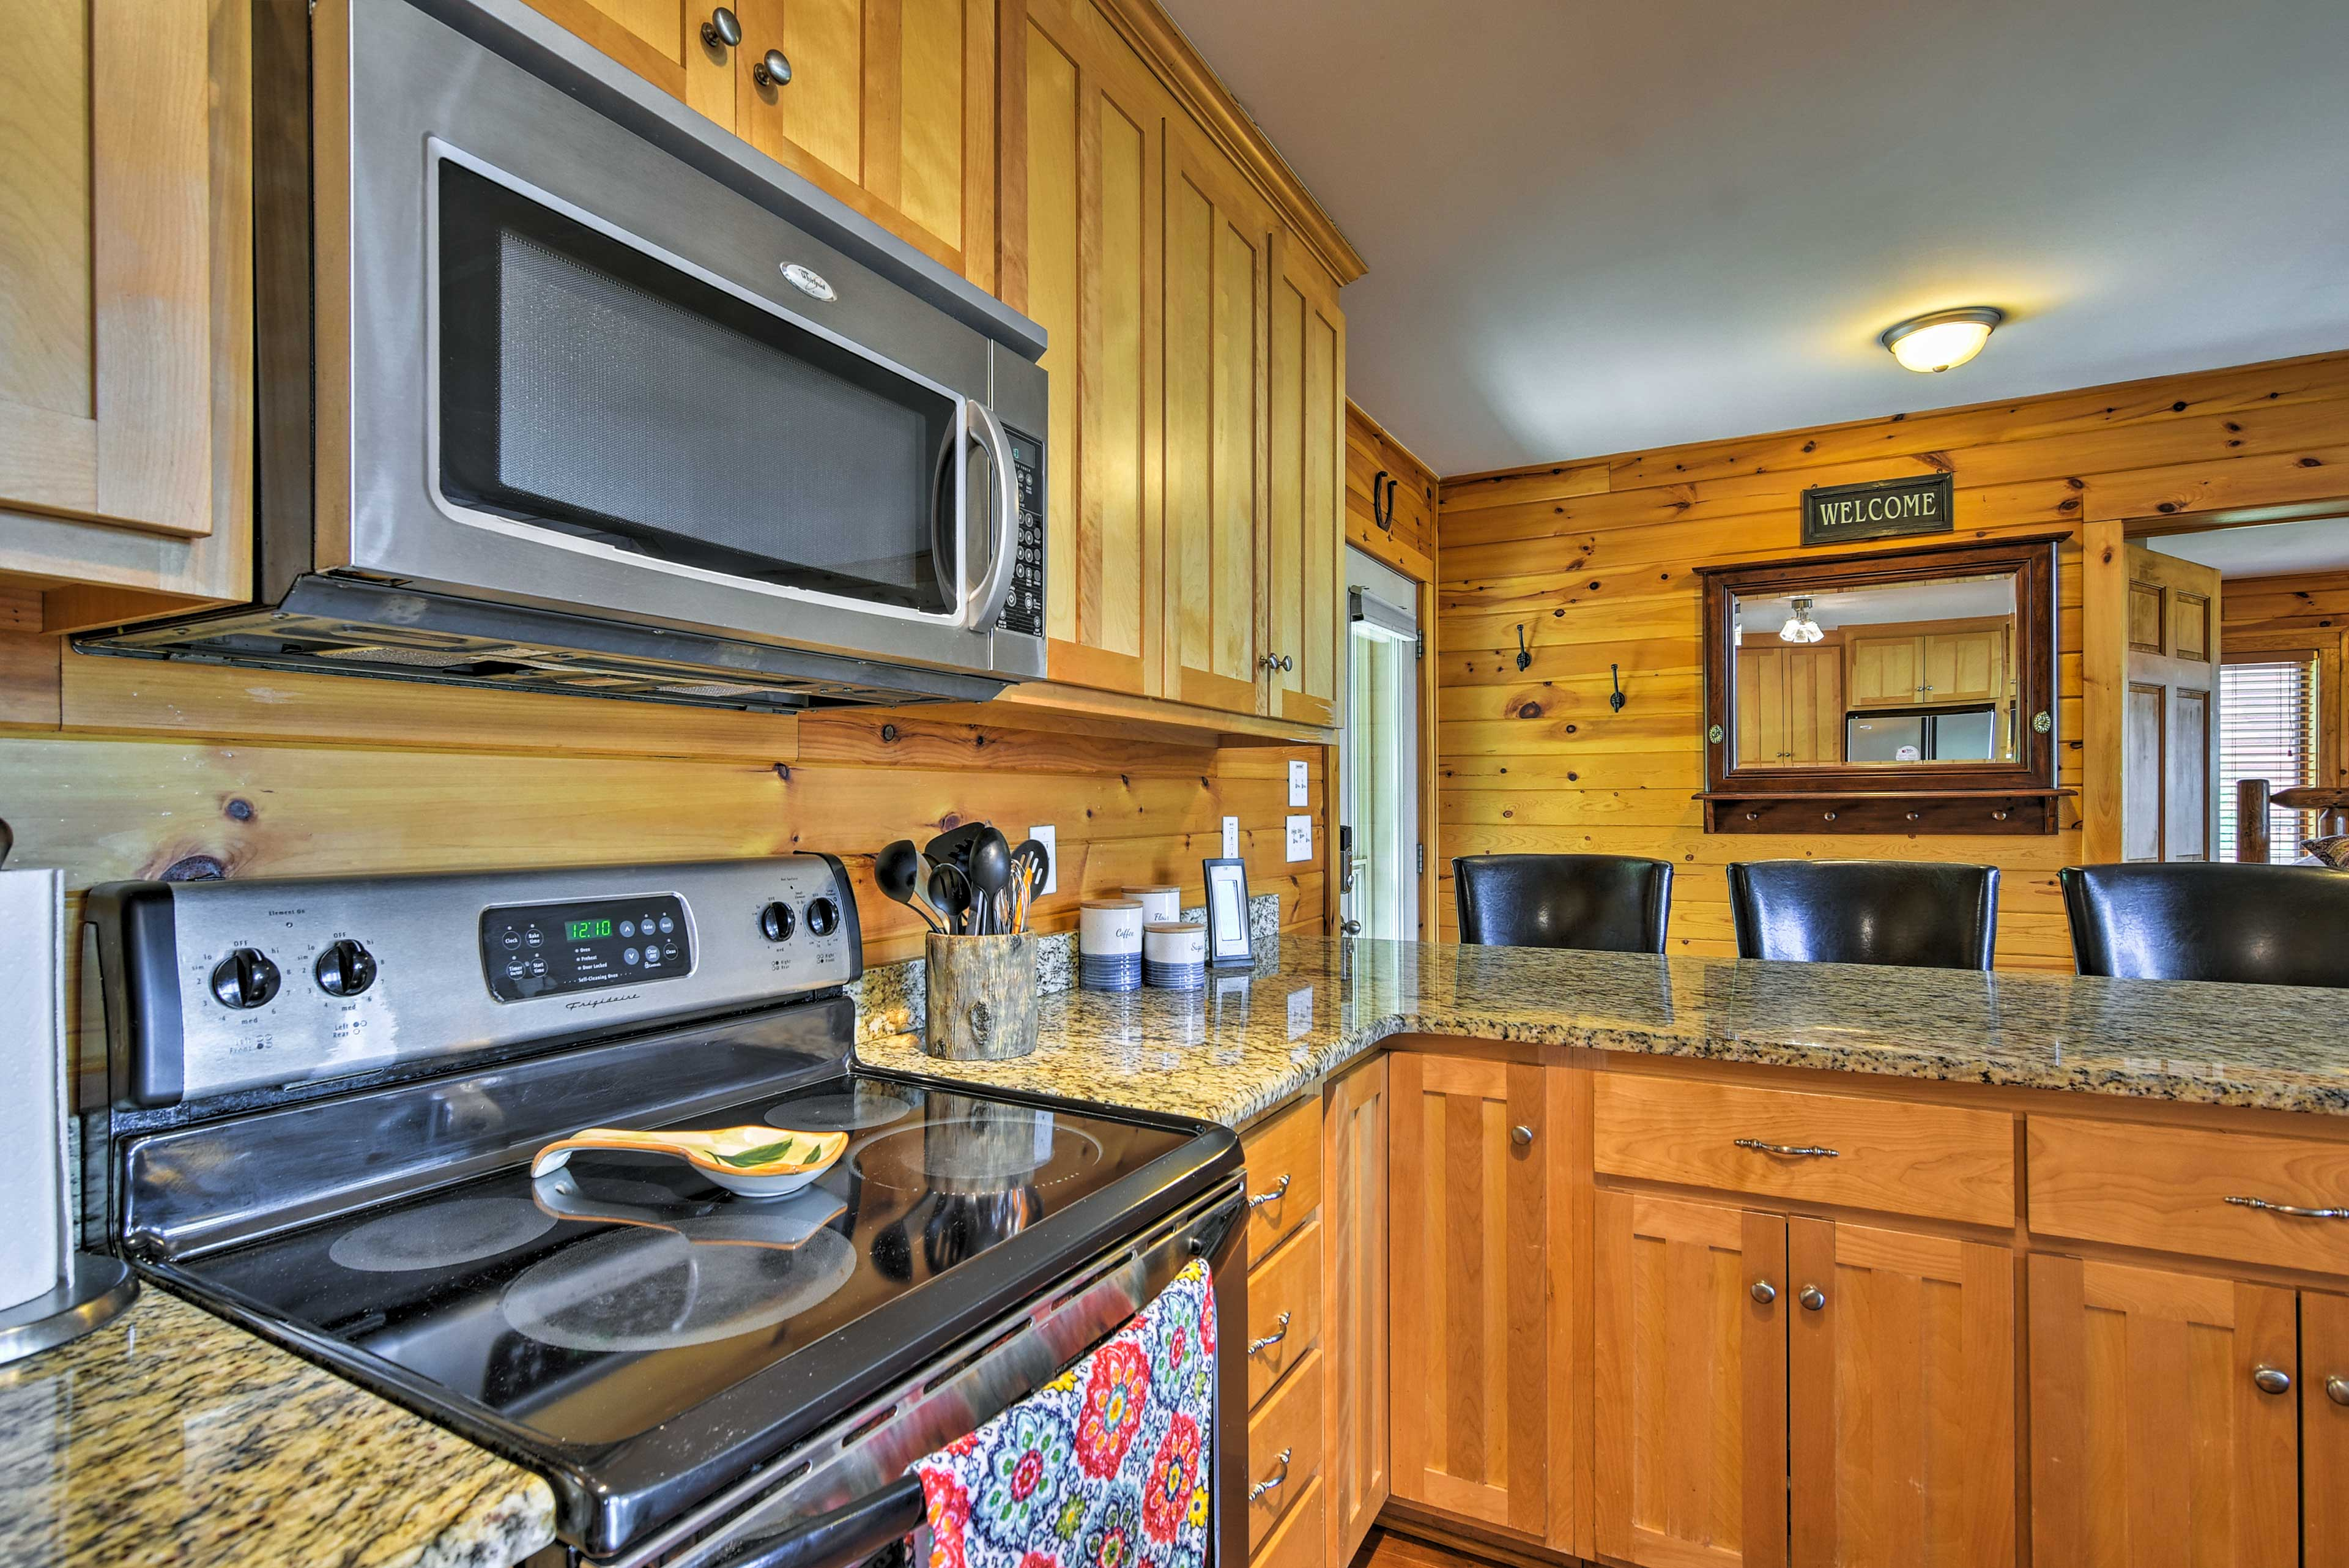 The kitchen is fully equipped with sleek appliances & granite countertops.